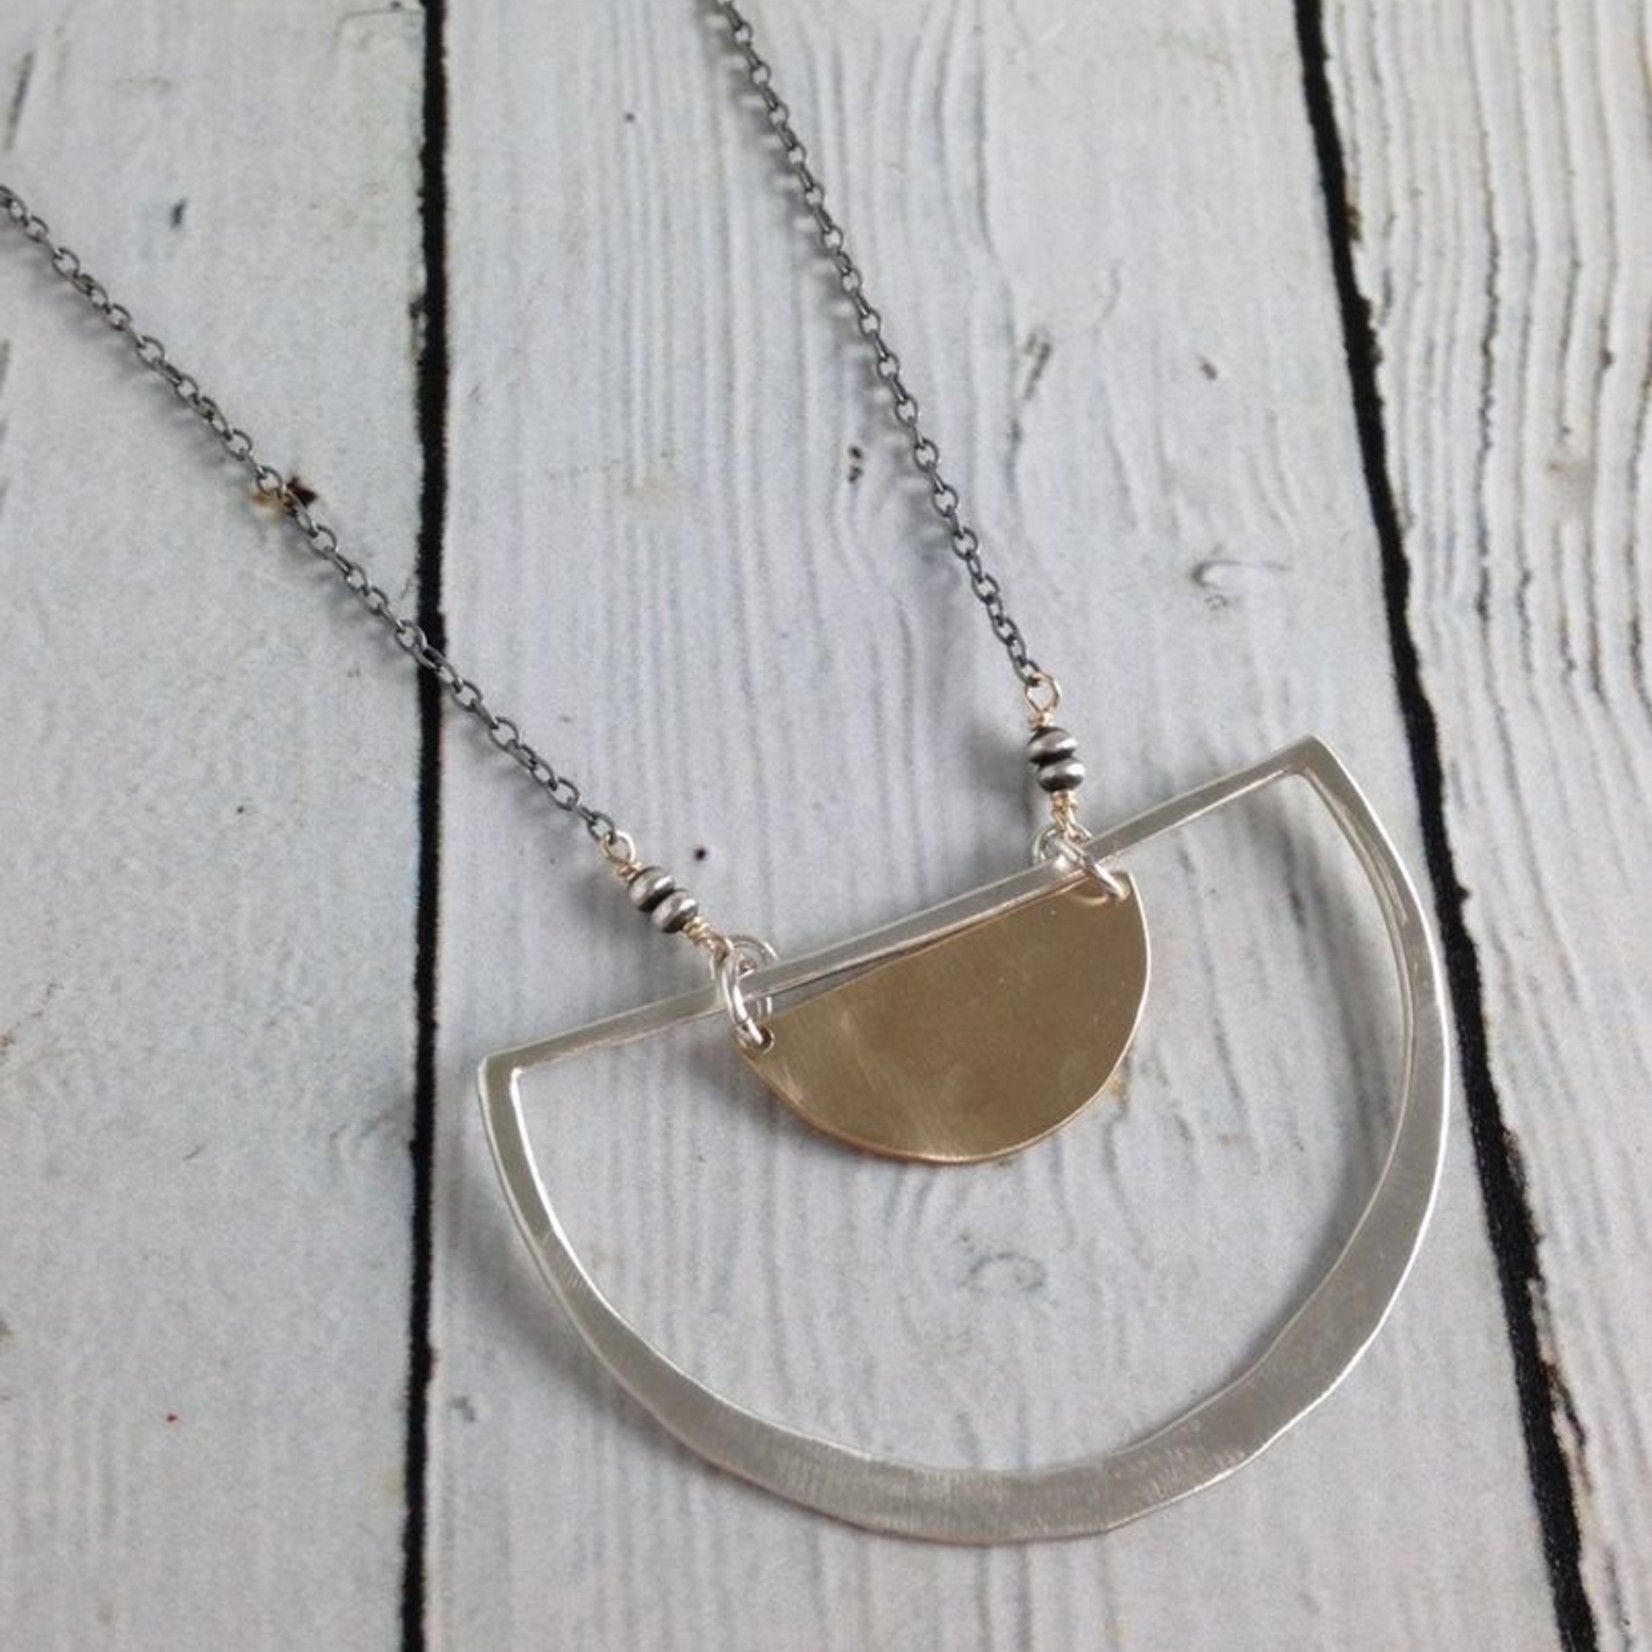 Handmade Sterling Semi Circle Pendant with 14kt GF Half Moon on Oxidized Chain